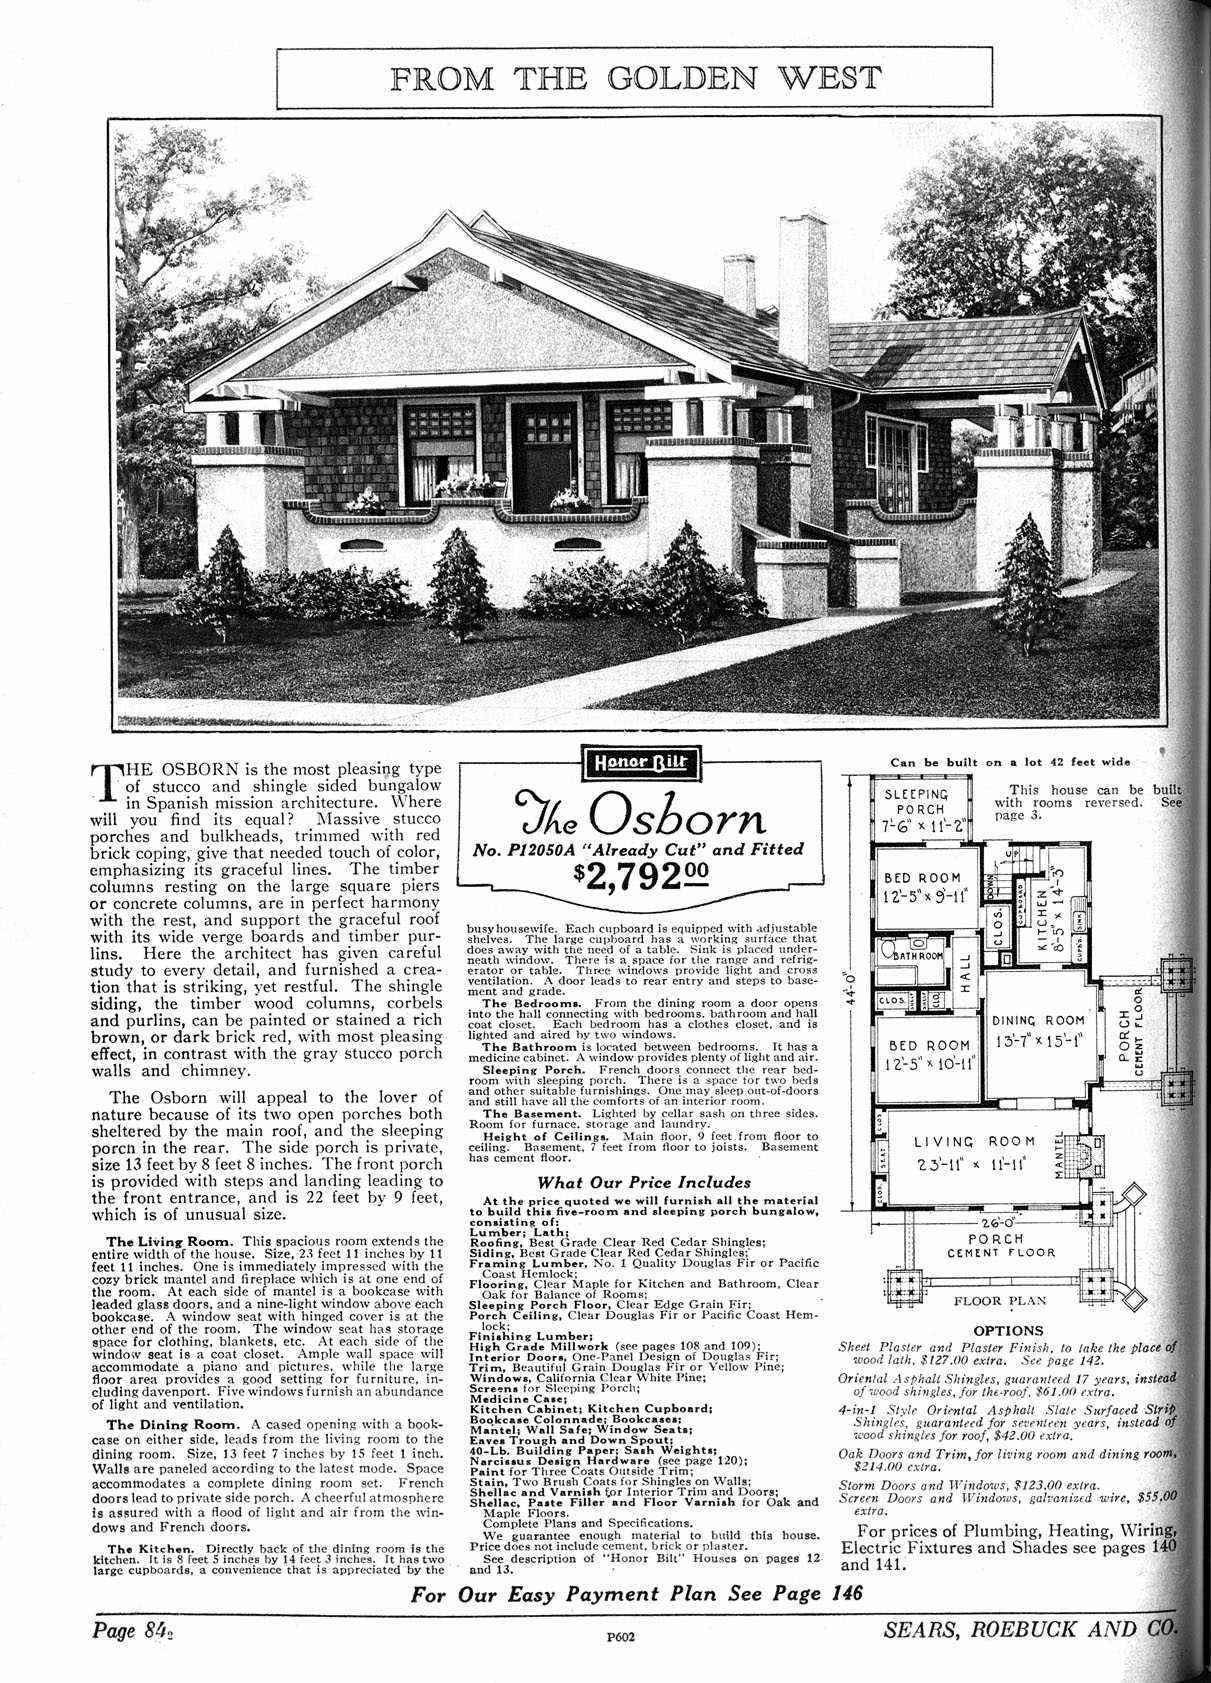 1927 Sears home. Wonder if they still have the plans for ... on 1913 sears house plans, sears house blueprints, sears houses 1920, 1950 sears house plans, sears house designs, sears house plans and 1922, original sears house plans, sears victorian house plans, sears small house plans, sears mail order house plans, backsplit floor plans, old sears house plans, sears magnolia house plan, 1940 sears house plans, sears house kitchens, sears house plans 1880, sears house plans between 1904 1908, sears house interiors, sears ranch house plans, sears home plans,